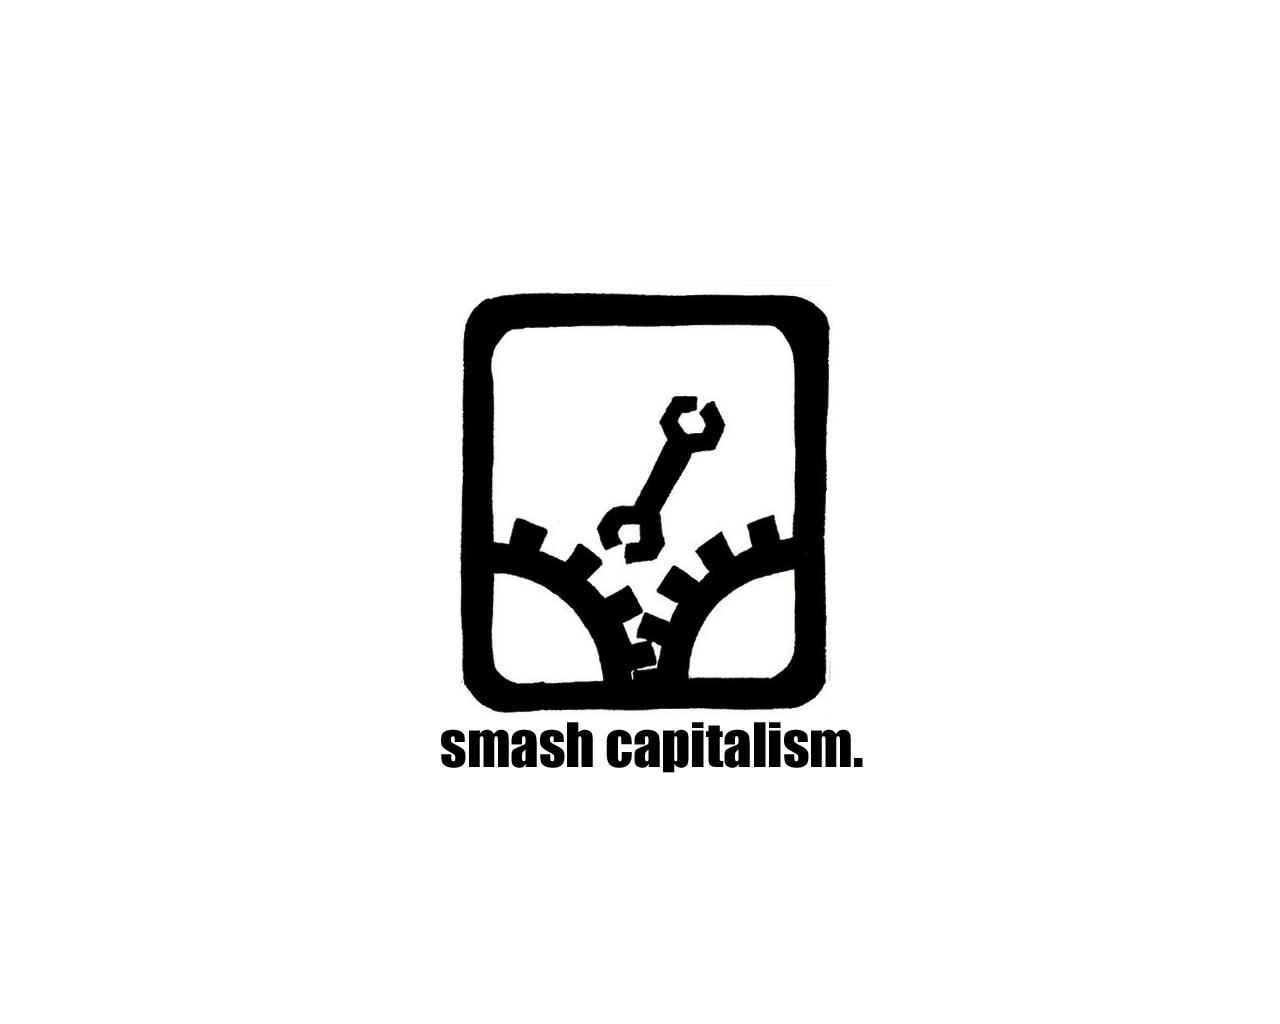 smash capitalism by focosorosso